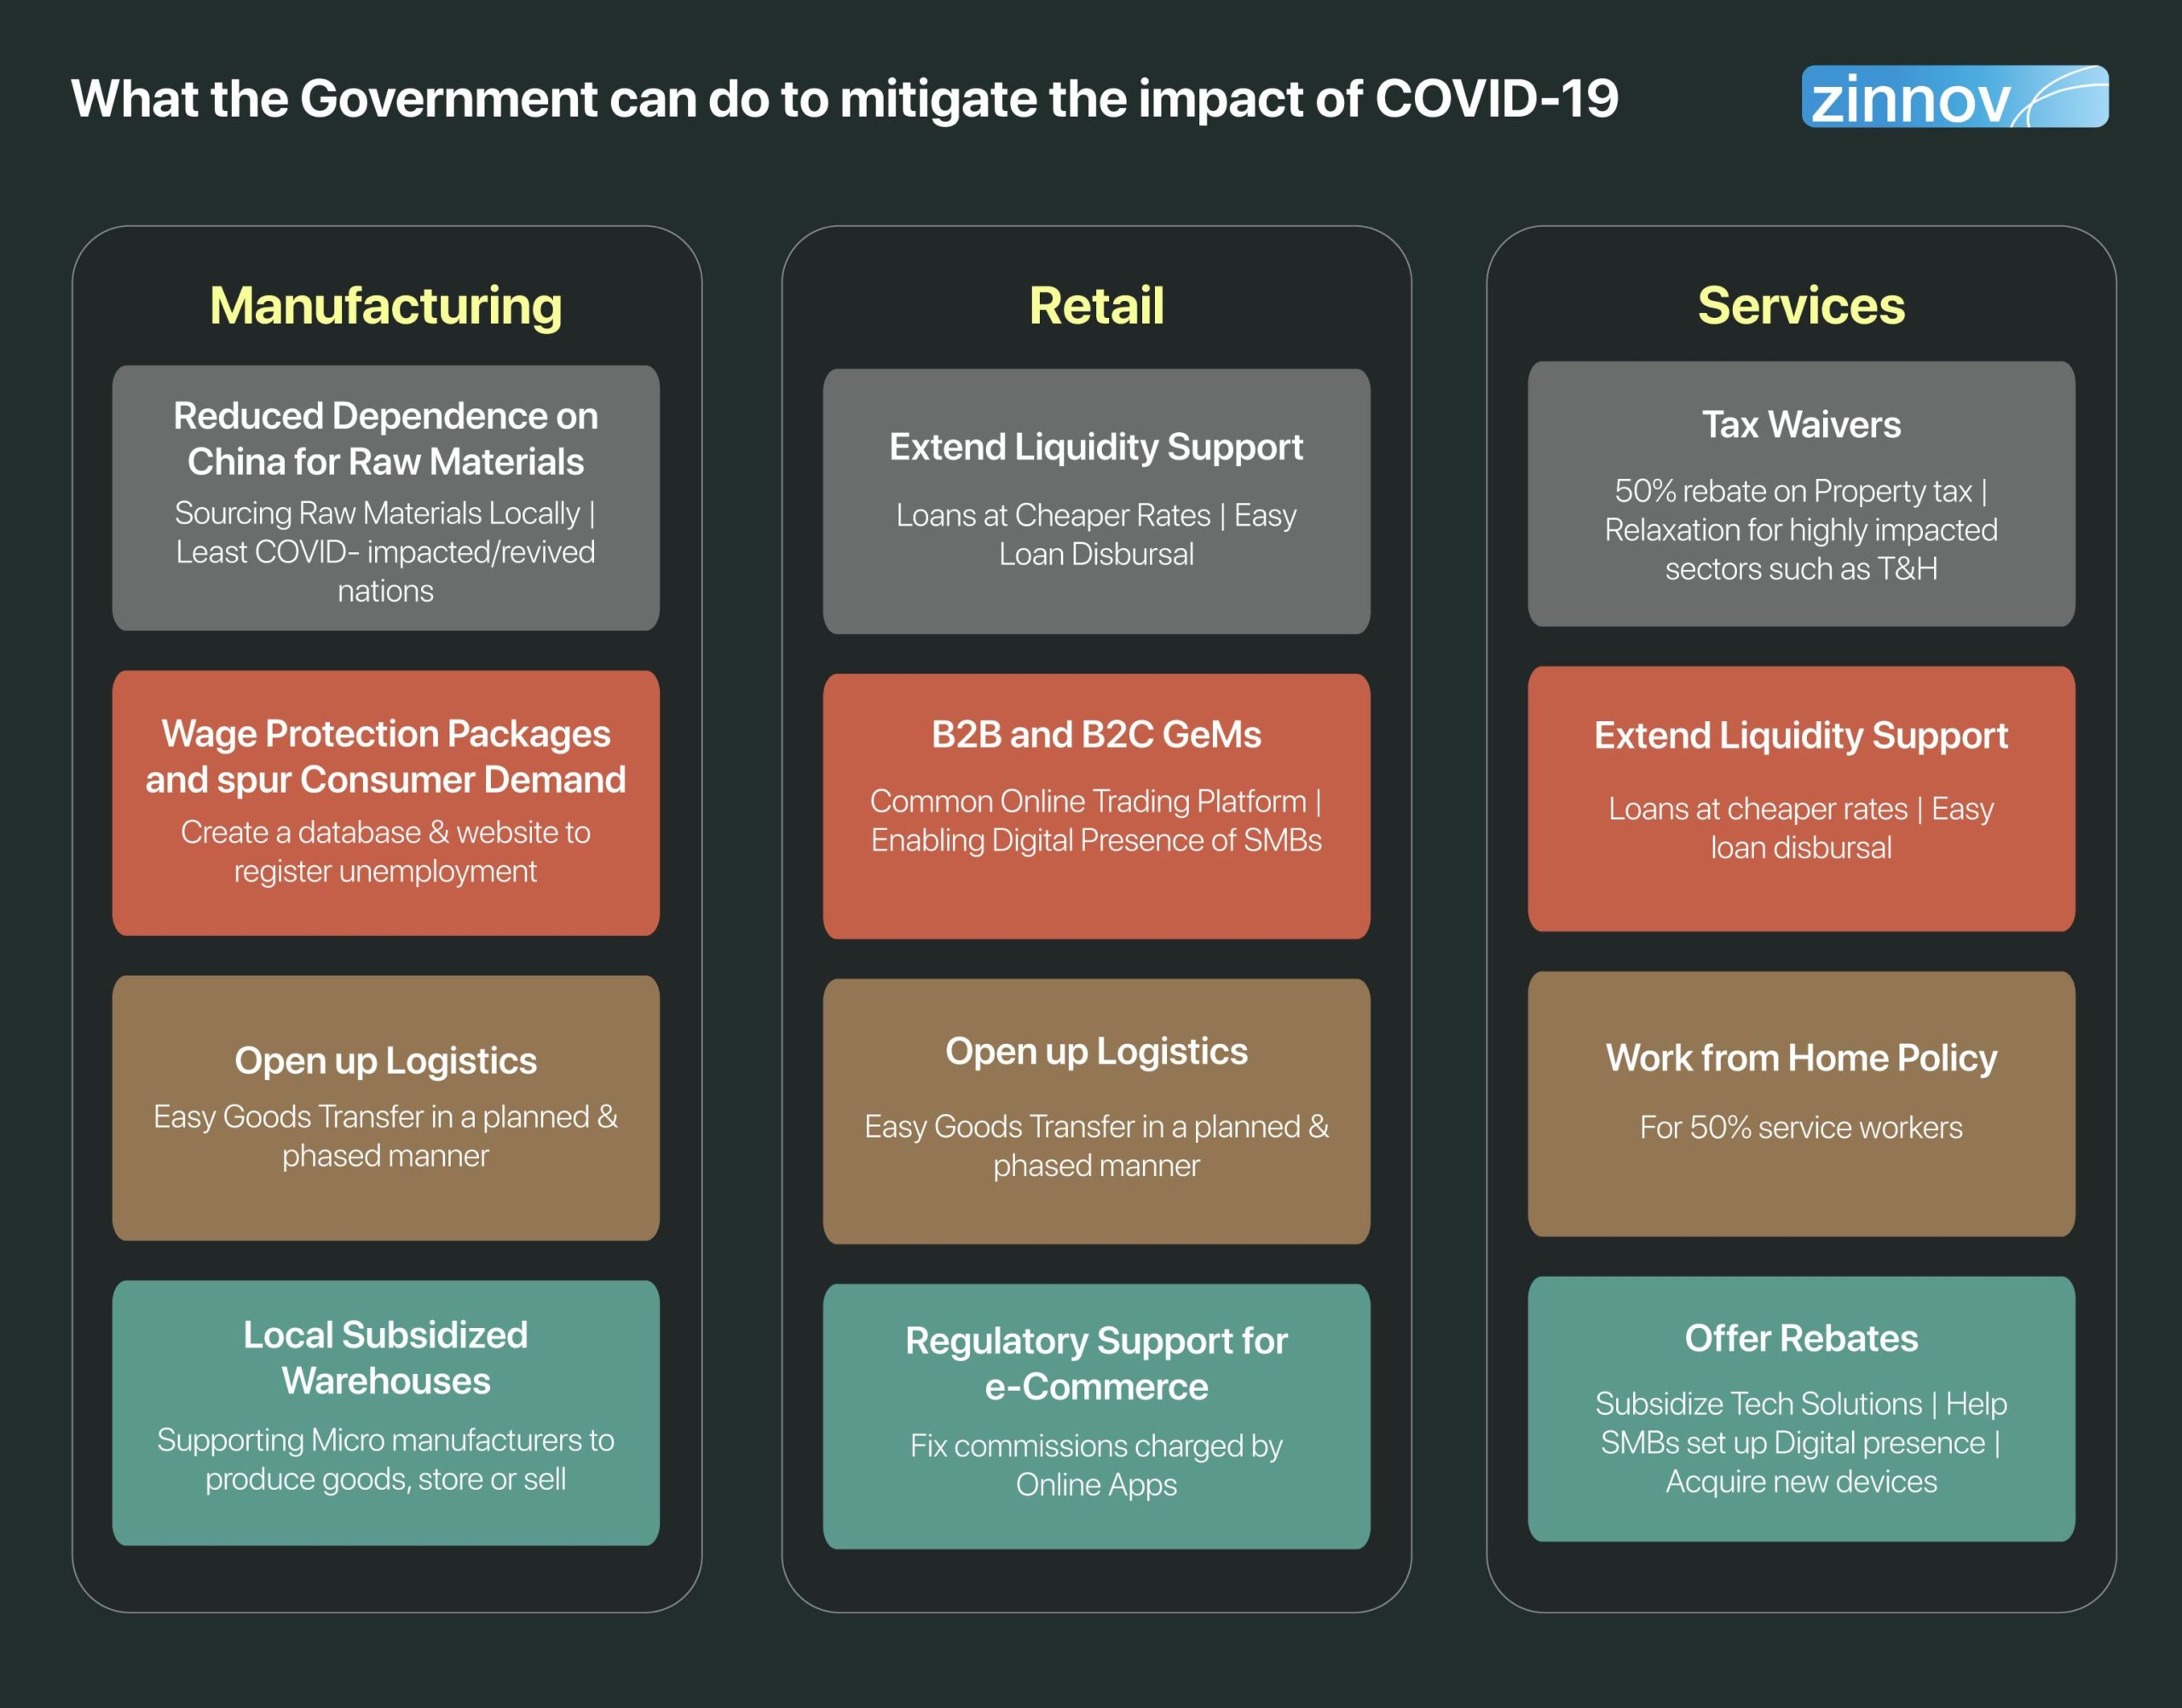 What the Government can do to mitigate the impact of COVID-19